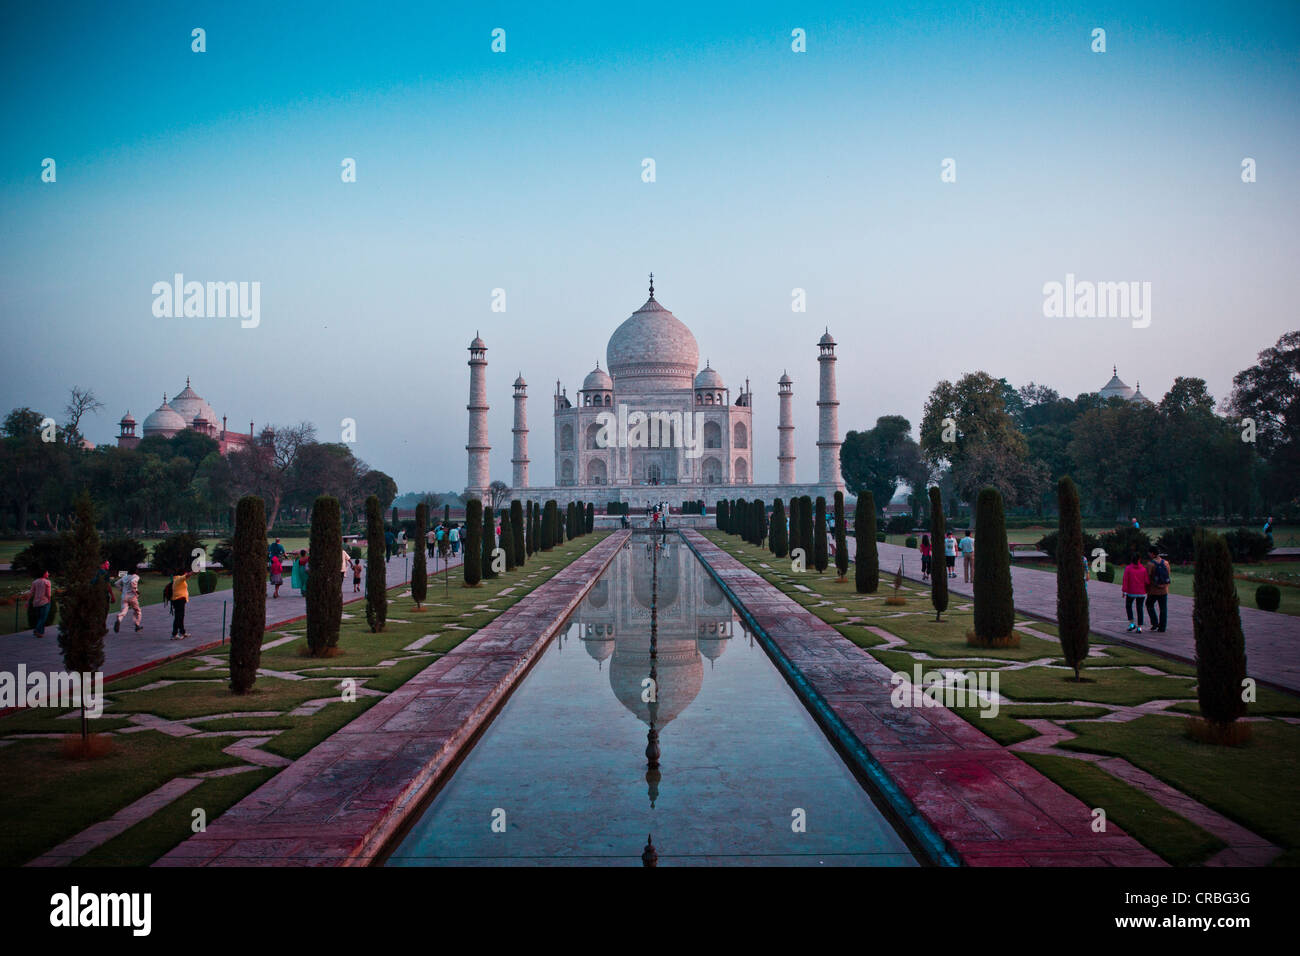 The sun rises over the Taj Mahal, taken from the end of the reflection pool. Stock Photo